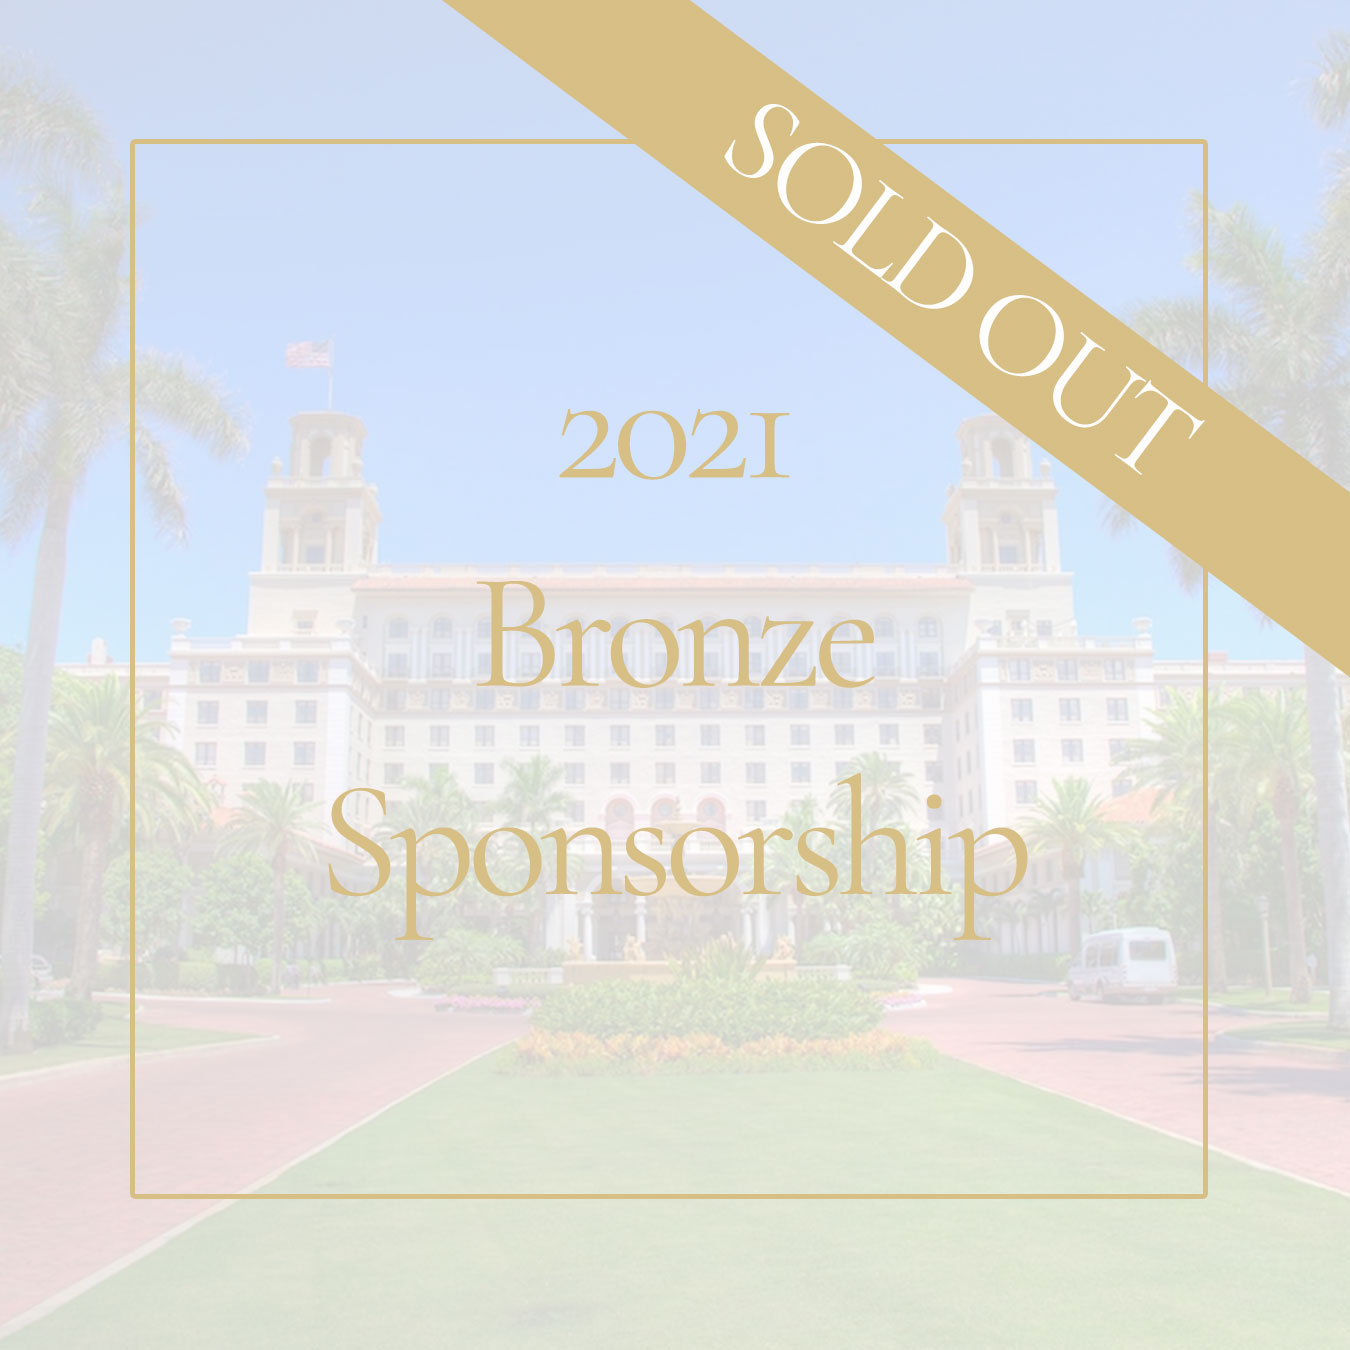 2021-item-gala-bronze-sold-out-selfless-love-foundation